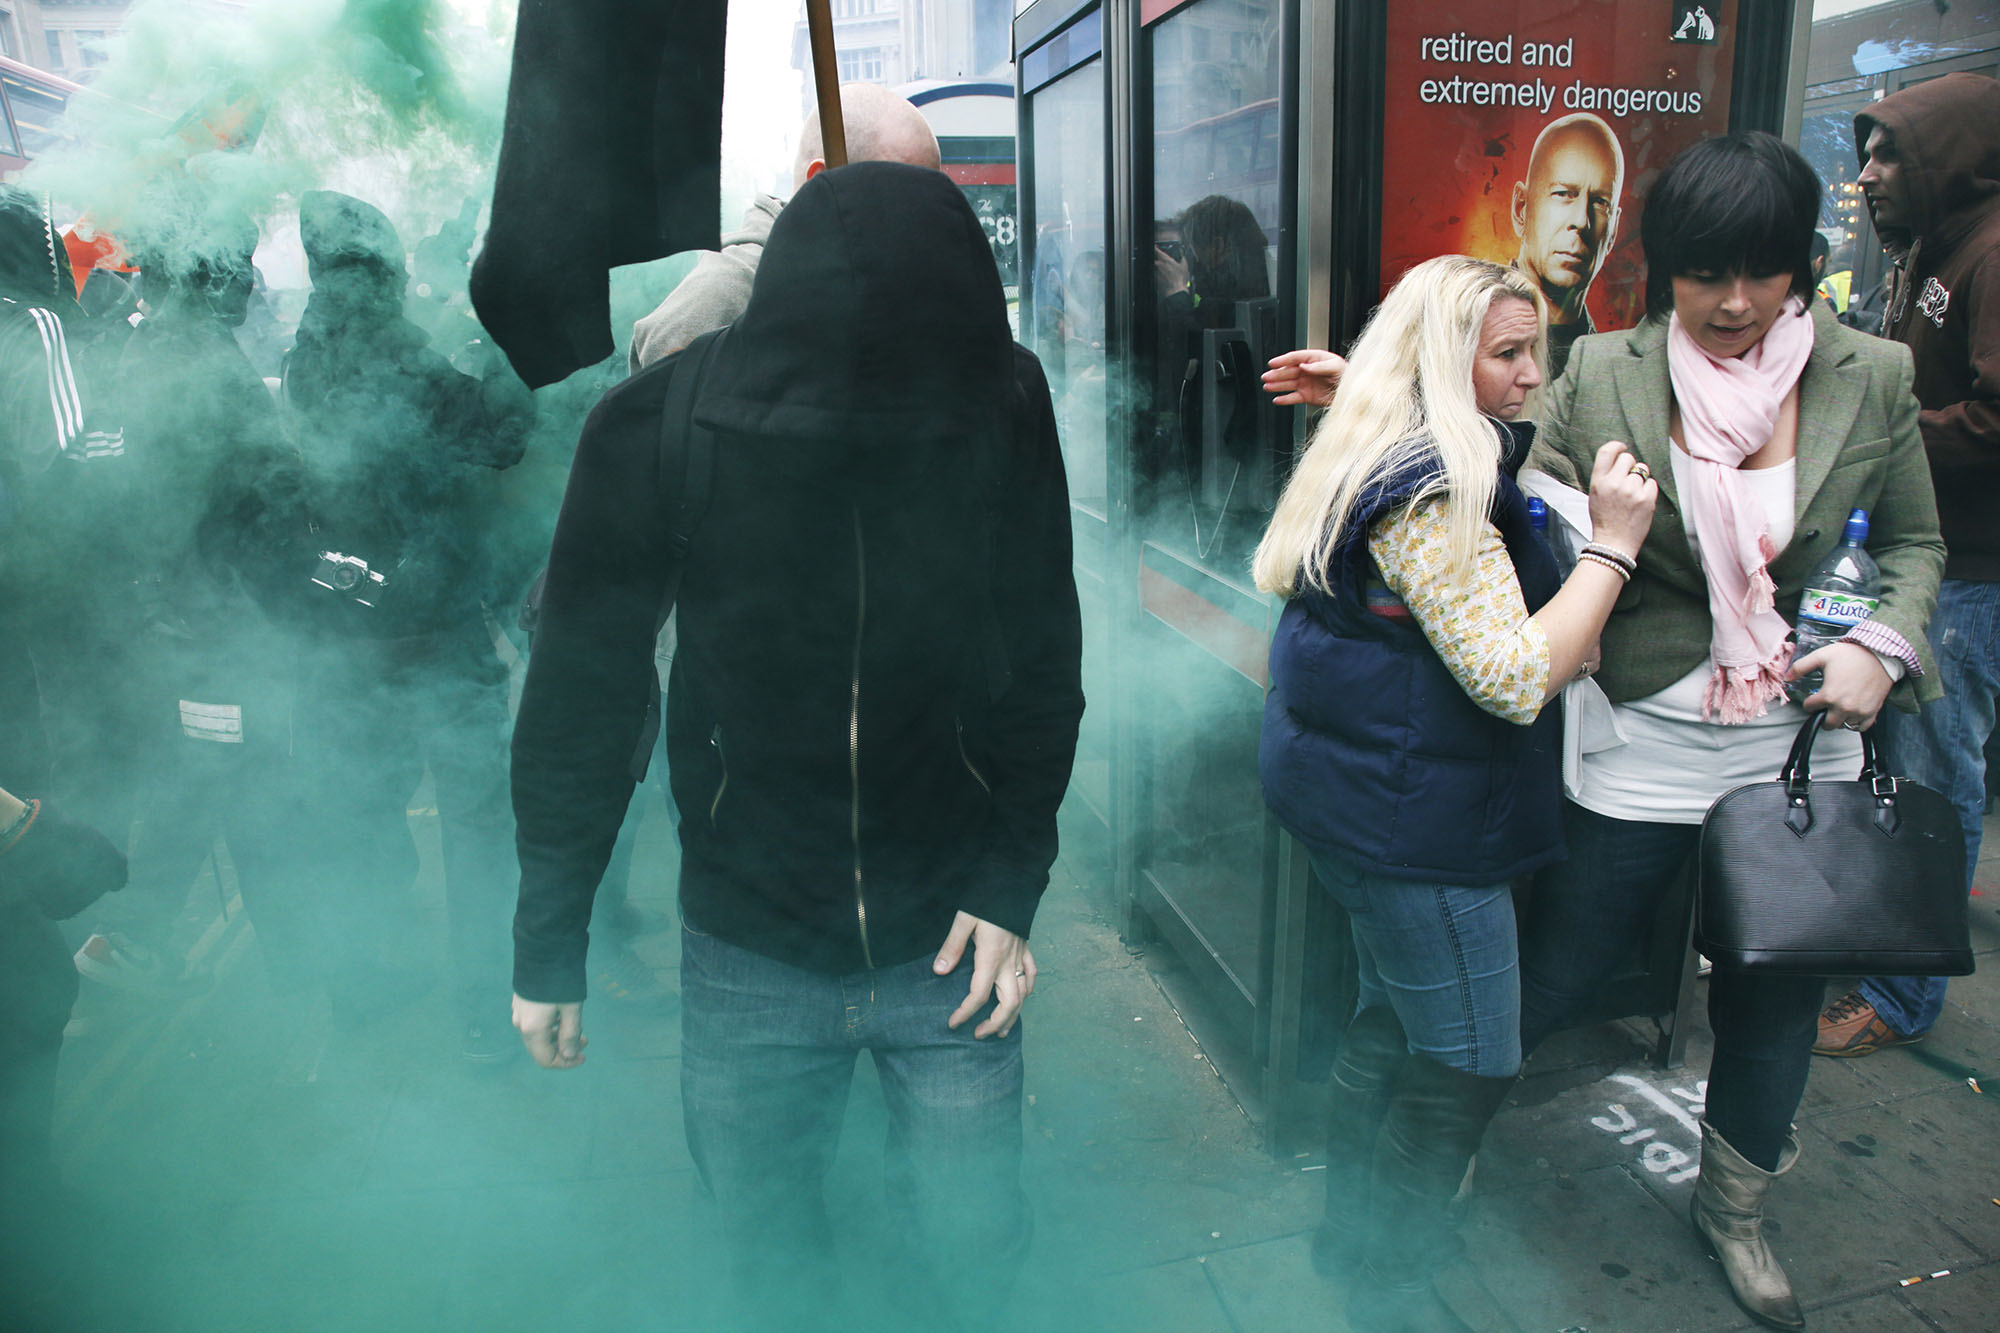 Anarchists go on the rampage through central London frightening shoppers on Oxford Street. Bruce makes sure they are all safe.